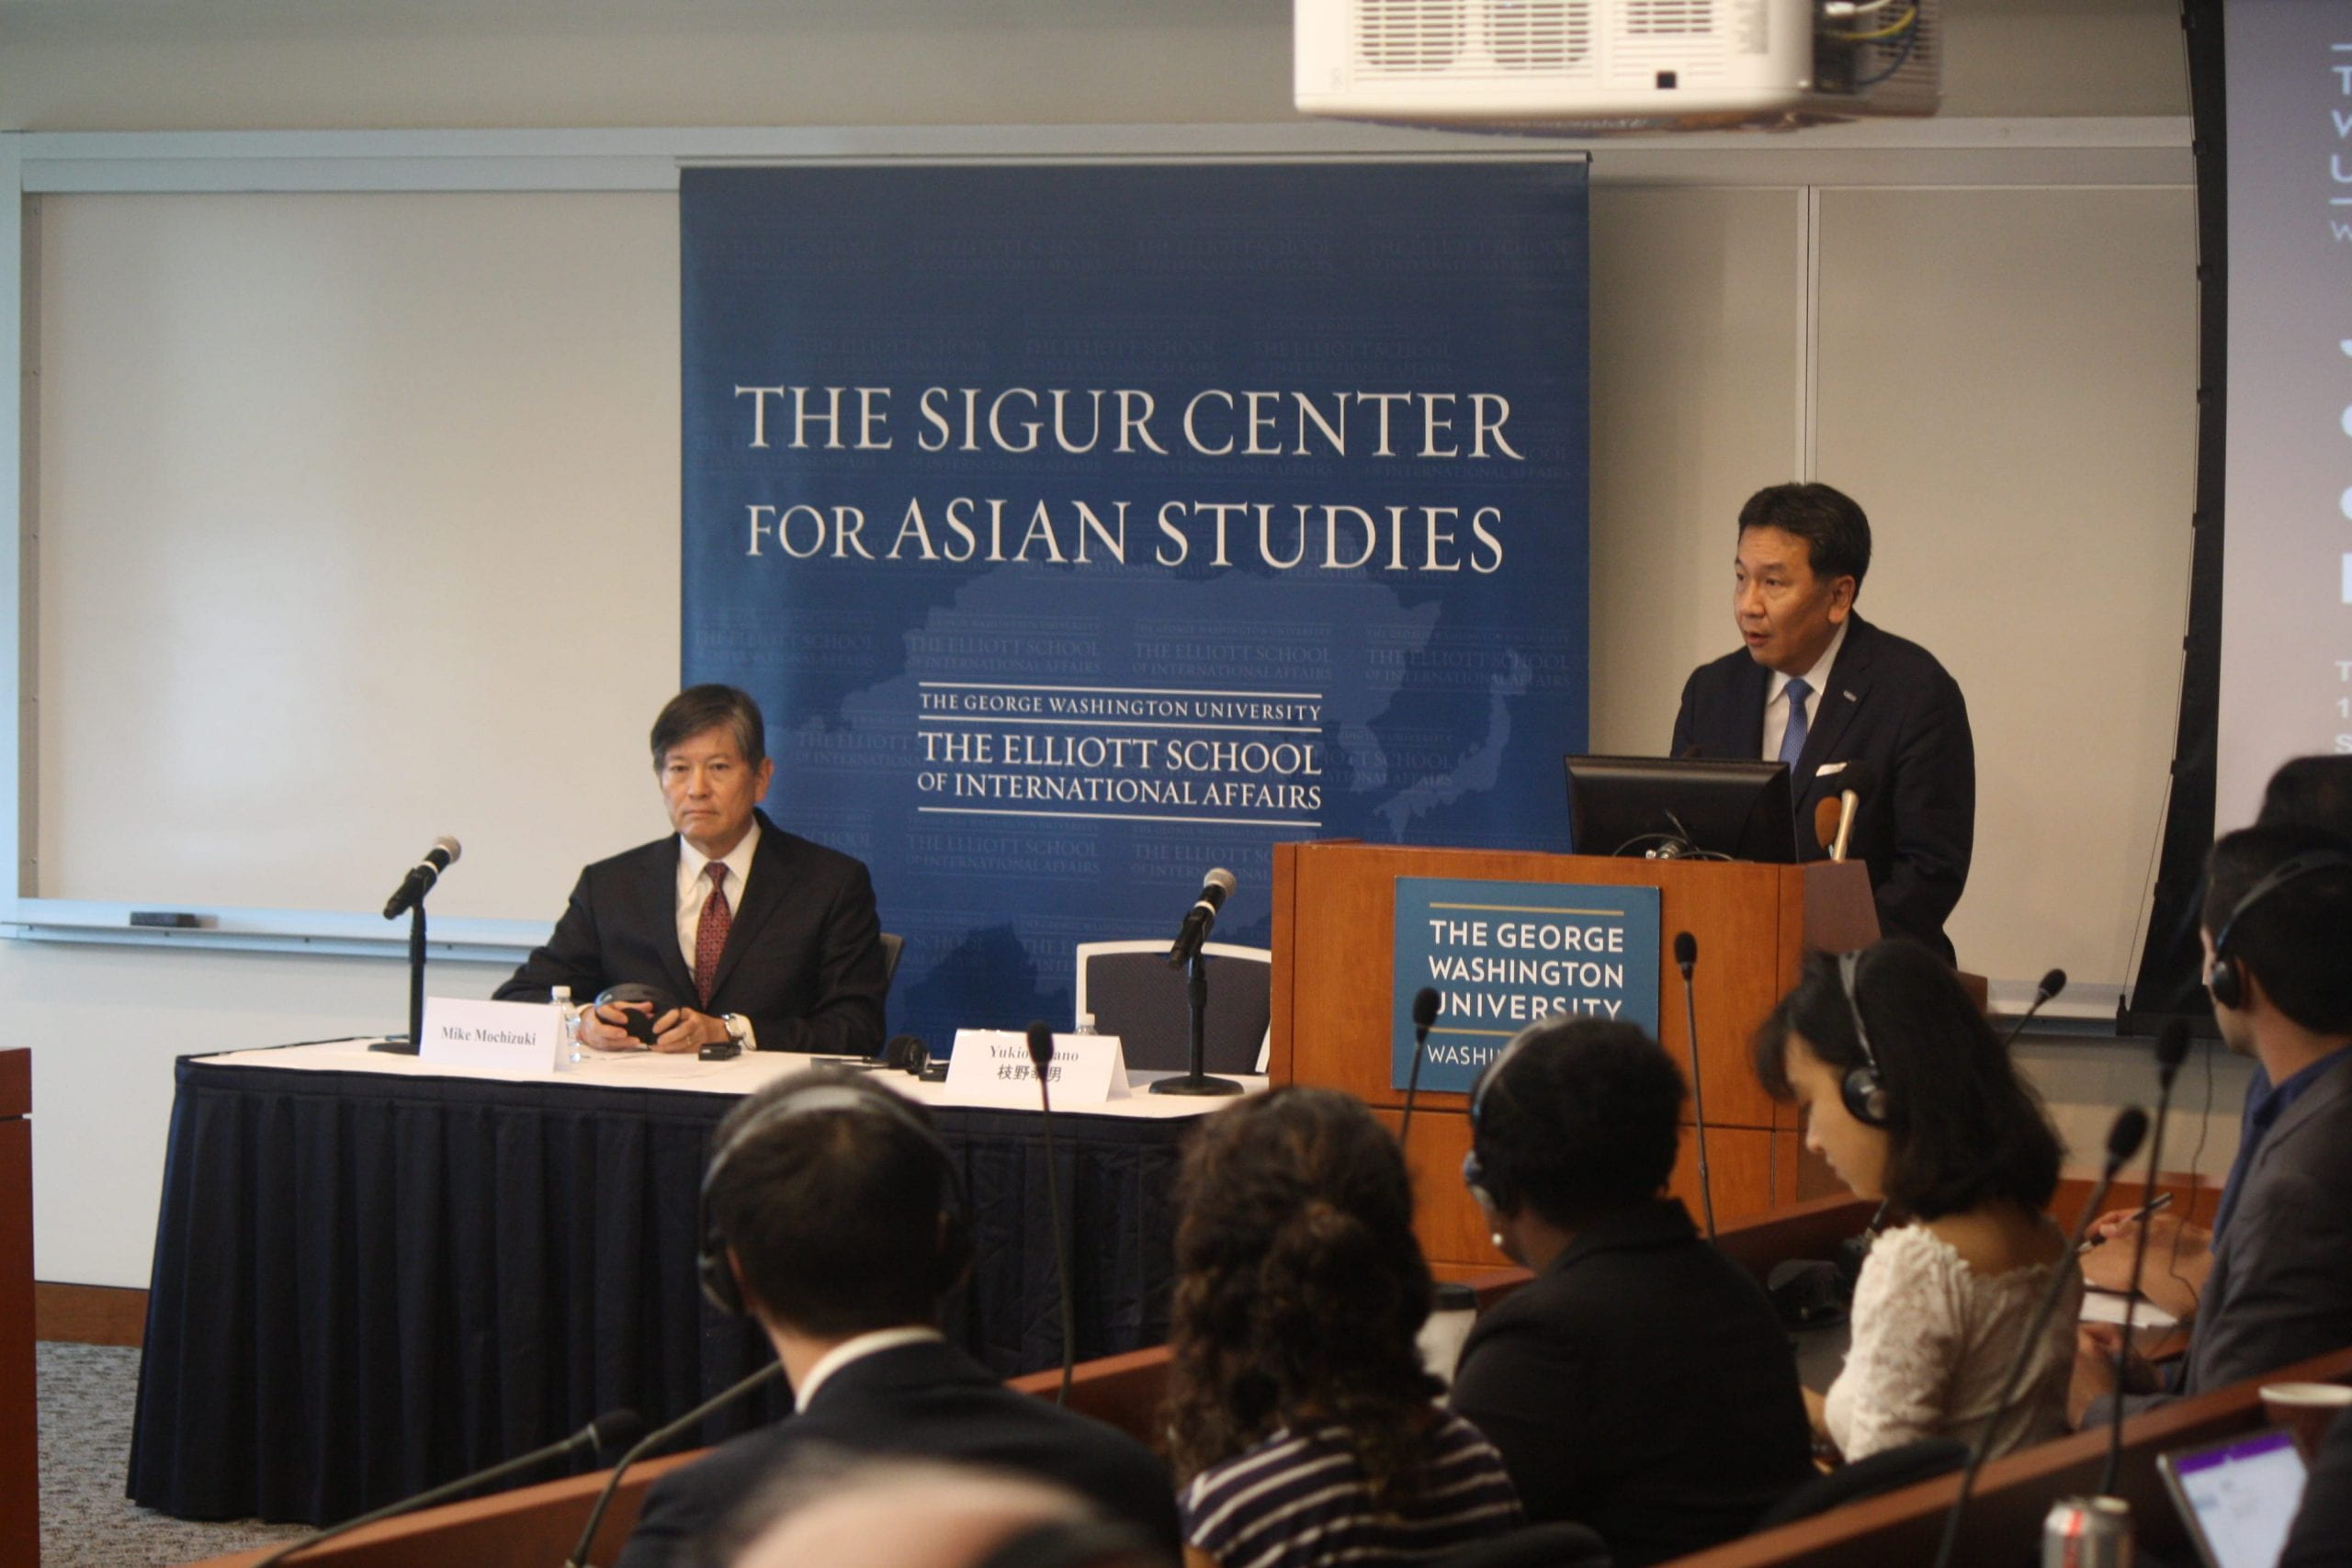 """Constitutional Democratic Party of Japan leader Yukio Edano speaking at the public seminar event, """"Japan's Foreign Policy during an Era of Global Turbulence: Perspectives of the Constitutional Democratic Party of Japan"""" held on September 13, 2018."""